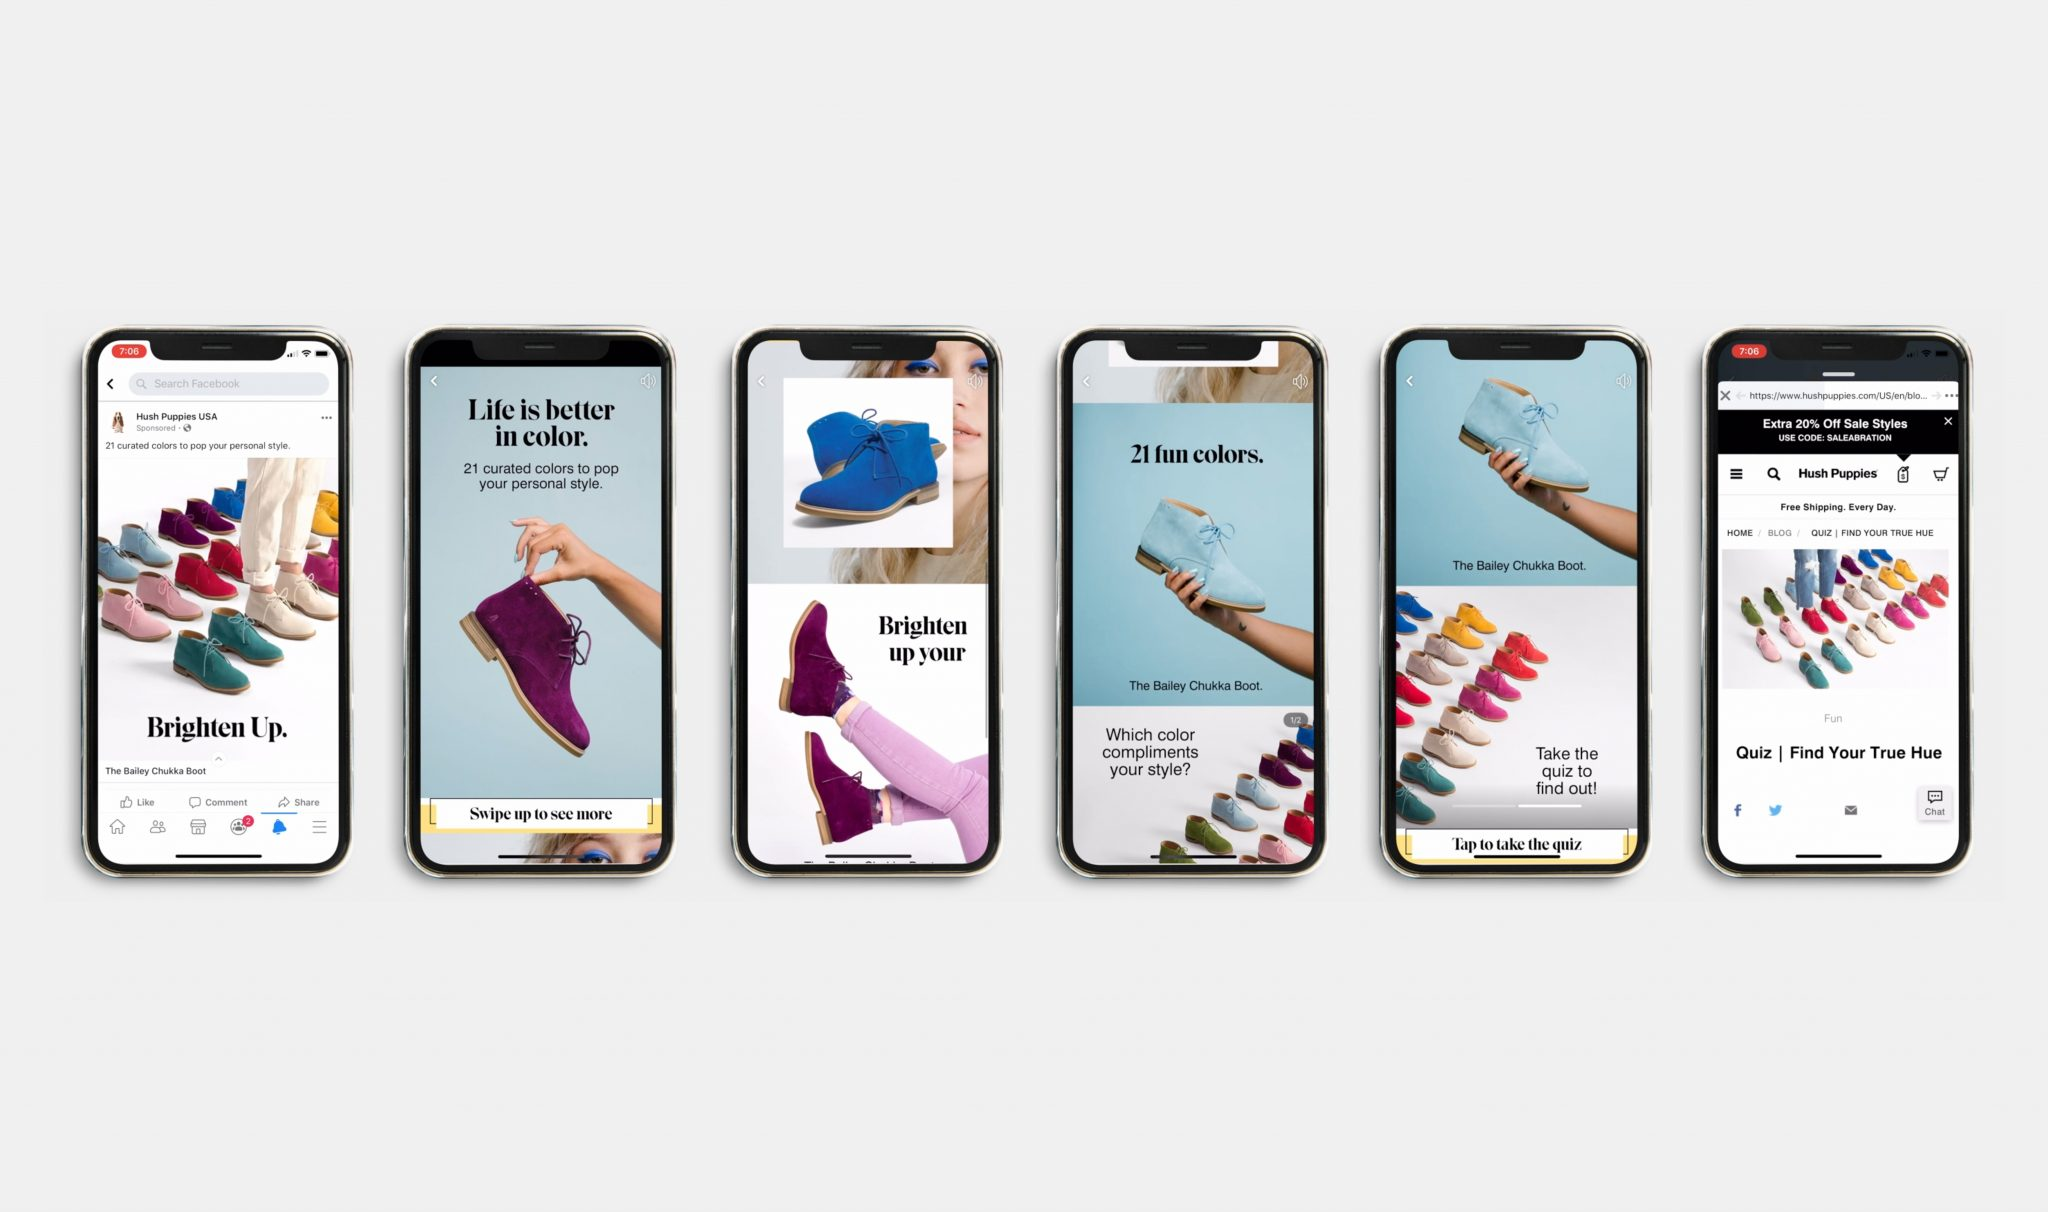 "The feature image shows six images of phones with screenshots of Hush Puppies' Bailey Chukka Boot Instant Experience ad. The first phone shows a lot of different color options of the shoes with text ""Brighten Up"" beneath all of the shoes. The second phone shows the text ""Life is better in color. 21 curated colors to pop your personal style"" with a blue background and a hand holding a purple colorway of the boot. Beneath that is a call to action button that reads ""swipe to see more."" The third phone shows first a royal blue colorway of the shoe with an image of a girl as the background with the same royal blue eyeshadow on. Beneath that is an image of two legs wearing the purple colorway of the shoe with the text ""Brighten up your"" above the image. The fourth phone shows the text ""21 fun colors"" on top of an image with a baby blue background and a hand holding the baby blue colorway of the shoe. The nails of the hand holding the shoe are painted baby blue. The text underneath the shoe reads ""The Bailey Chukka Boot."" Beneath that is the text ""which color compliments your style?"" on top of a photo that has some of the shoes in it. The fifth phone shows the same baby blue image as above, with another picture of a variety of colors of the boot that has text that reads ""tap to take the quiz."" Then, there is a call to action button that reads ""tap to take the quiz."" The last phone shows the landing page to take the quiz. The page shows an image of all of the colors of the boot and reads ""Quiz - find your true hue."""